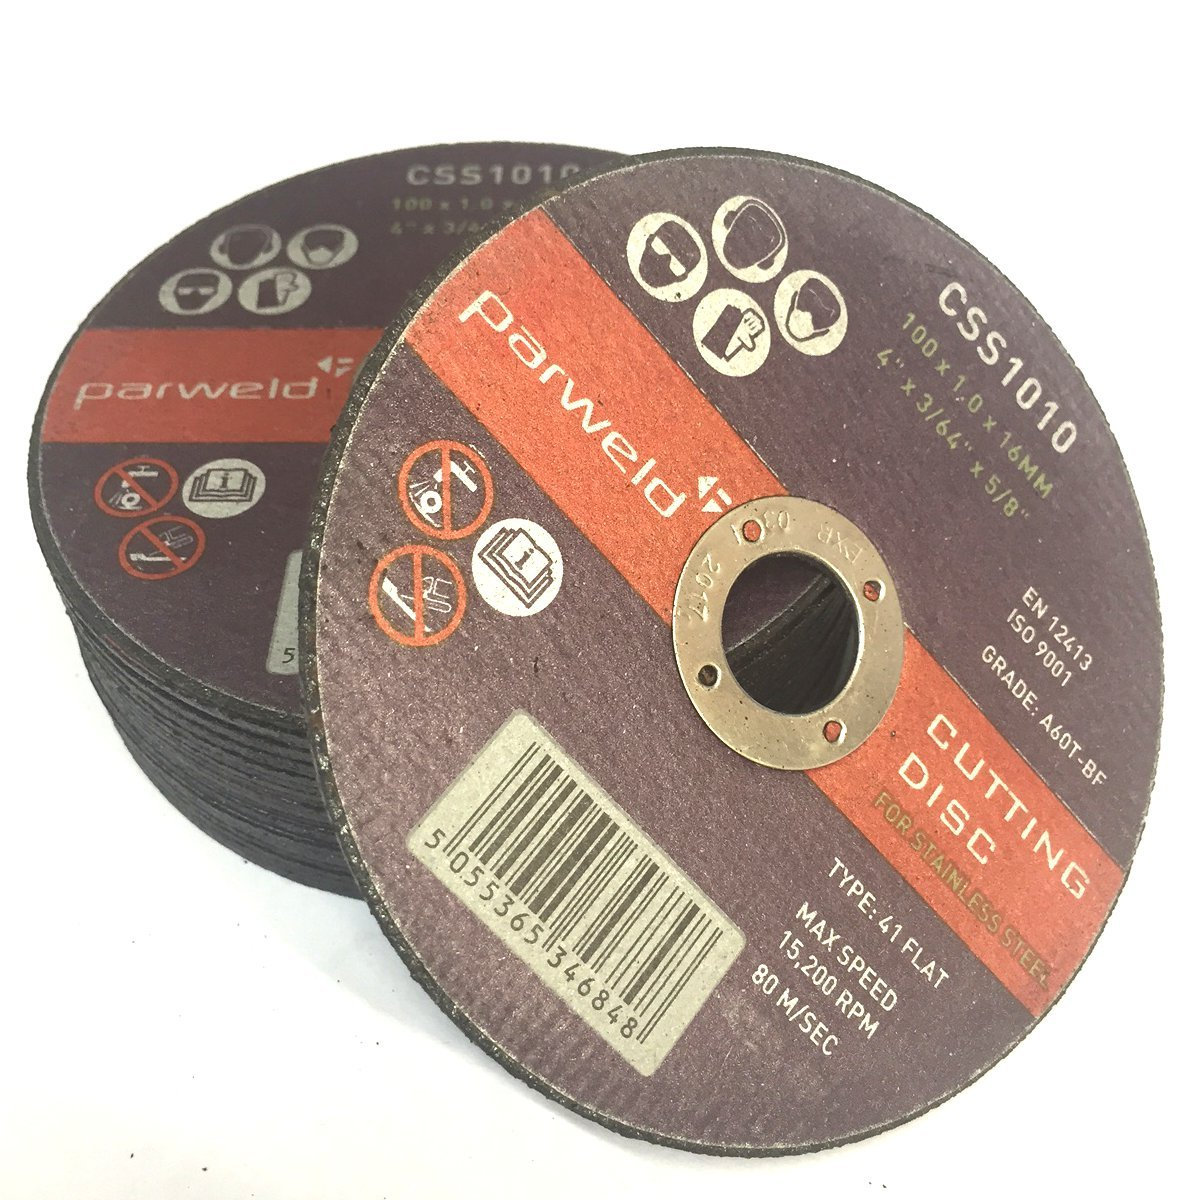 (PACK OF 100) Parweld (4') 100mm x 1mm Thin stainless Steel Cutting discs - metal slitting discs 16mm bore